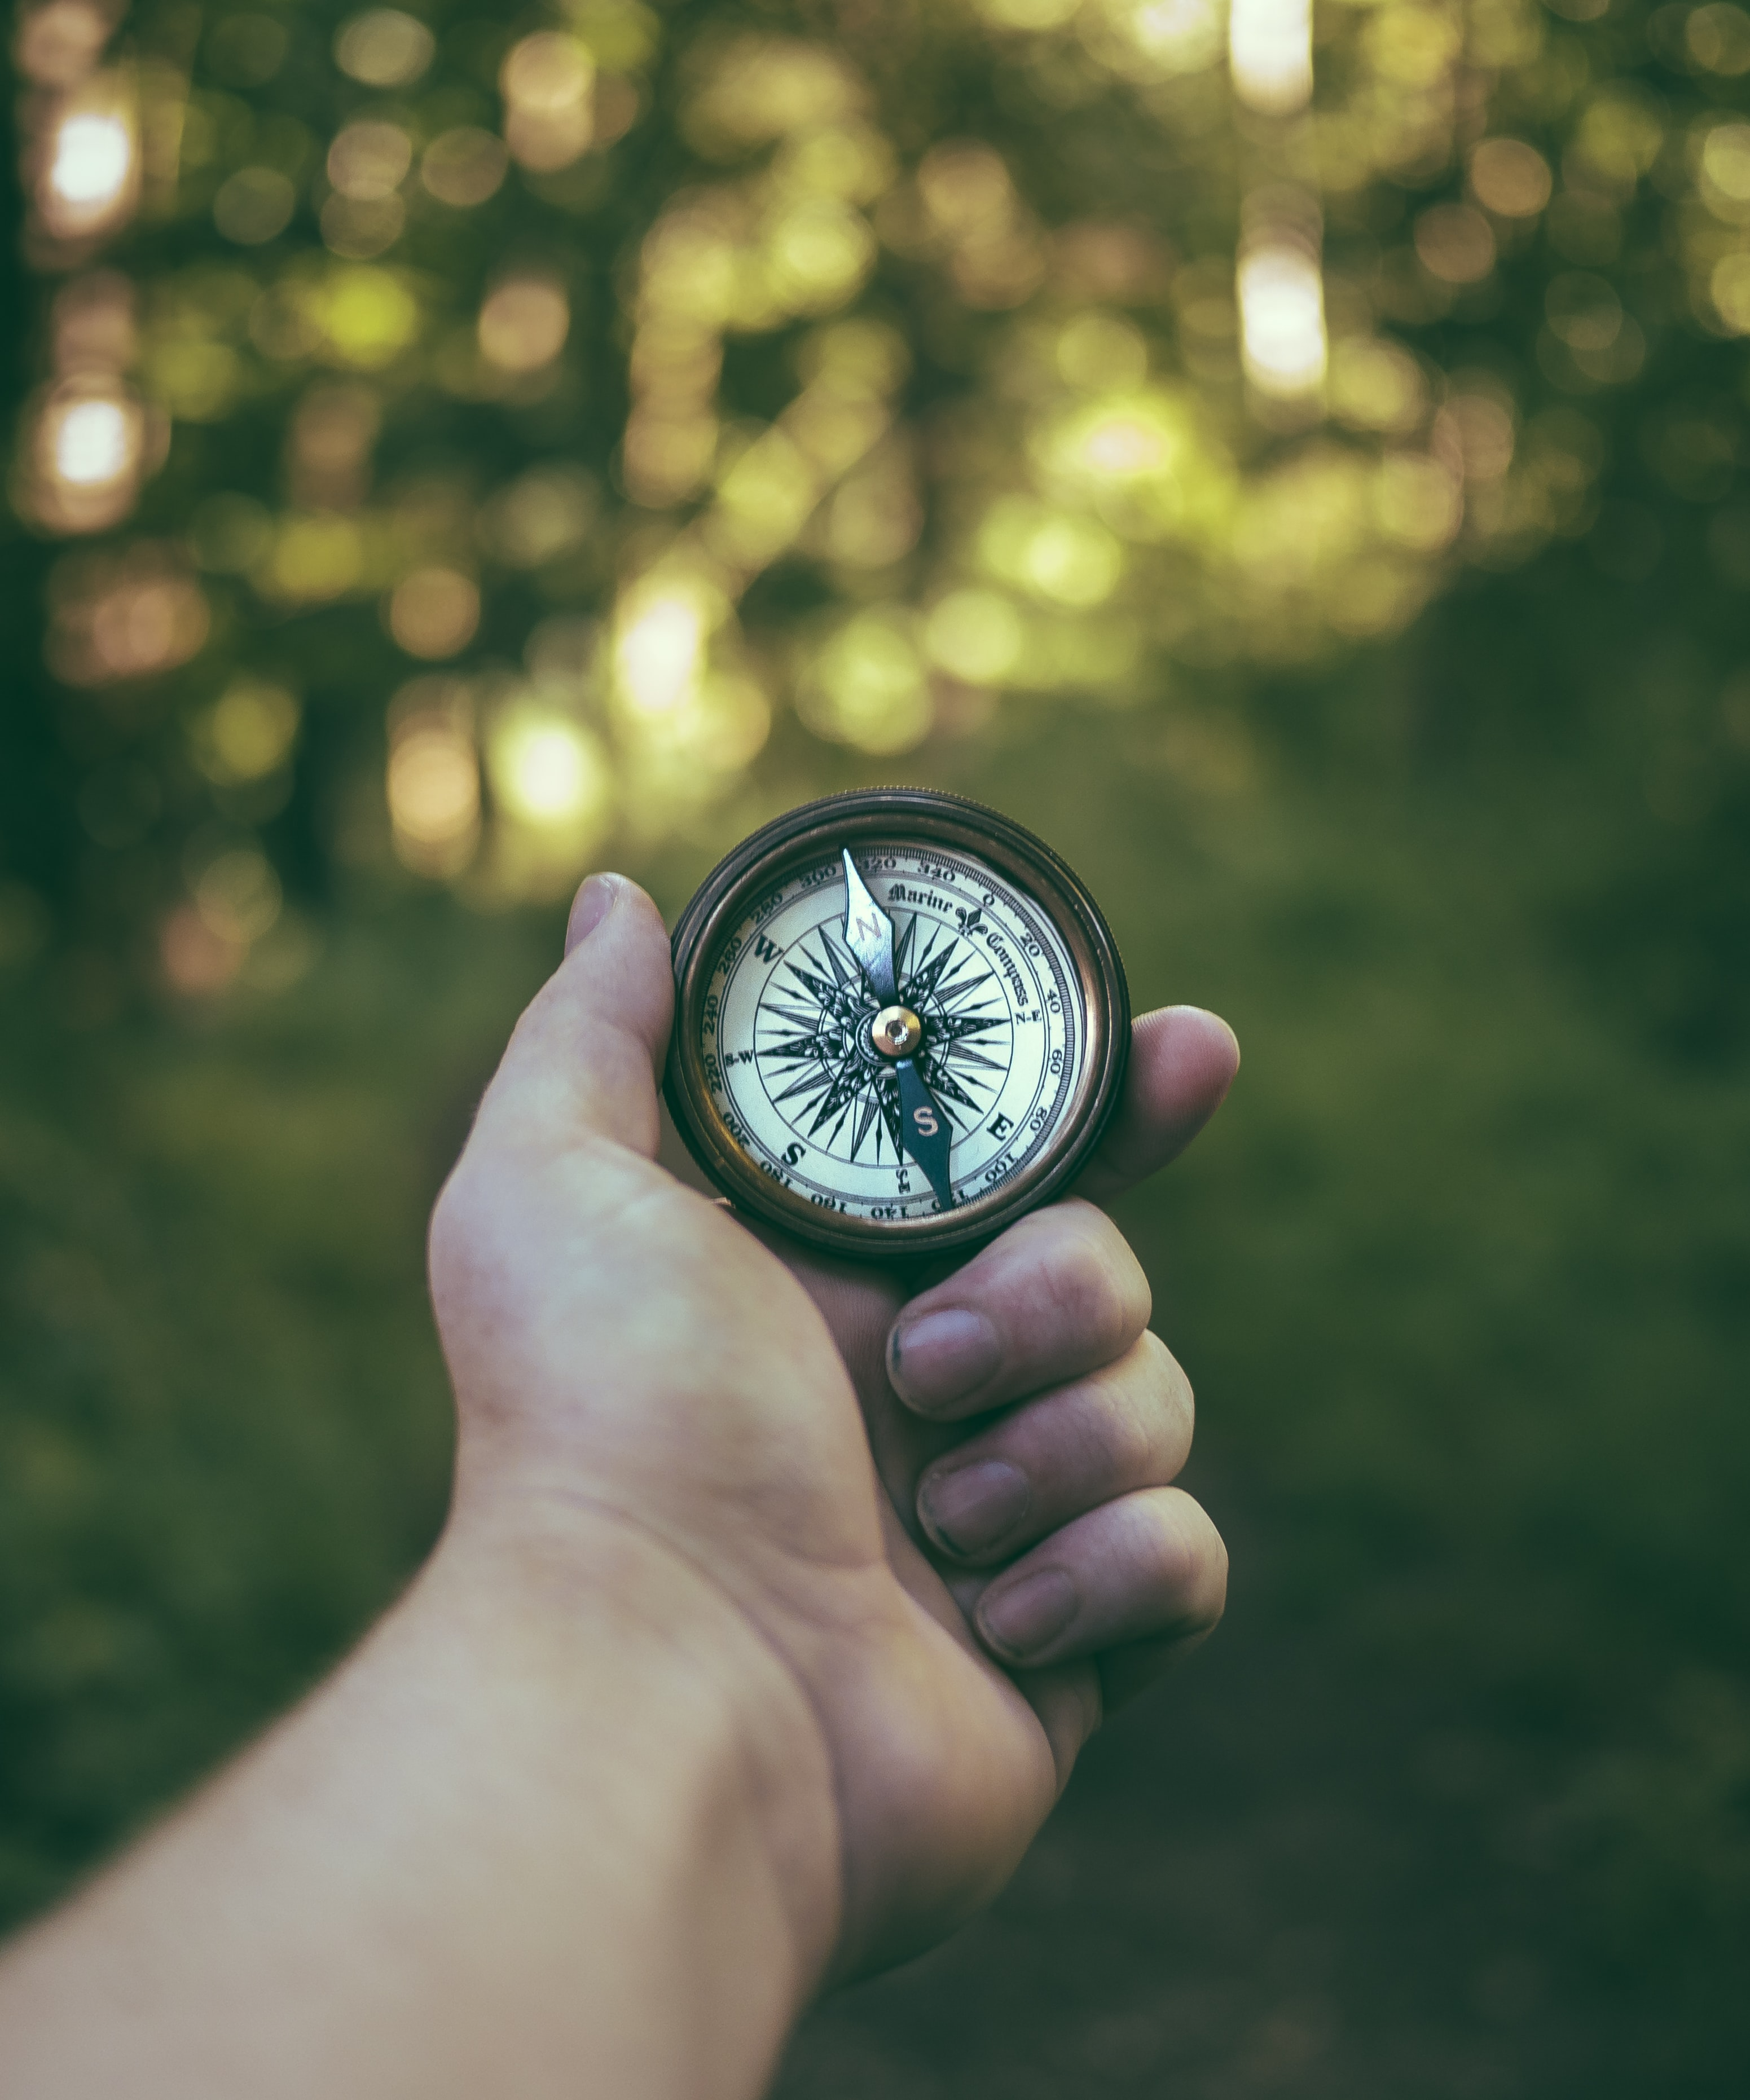 A person's hand holding and old-fashioned compass in the wilderness